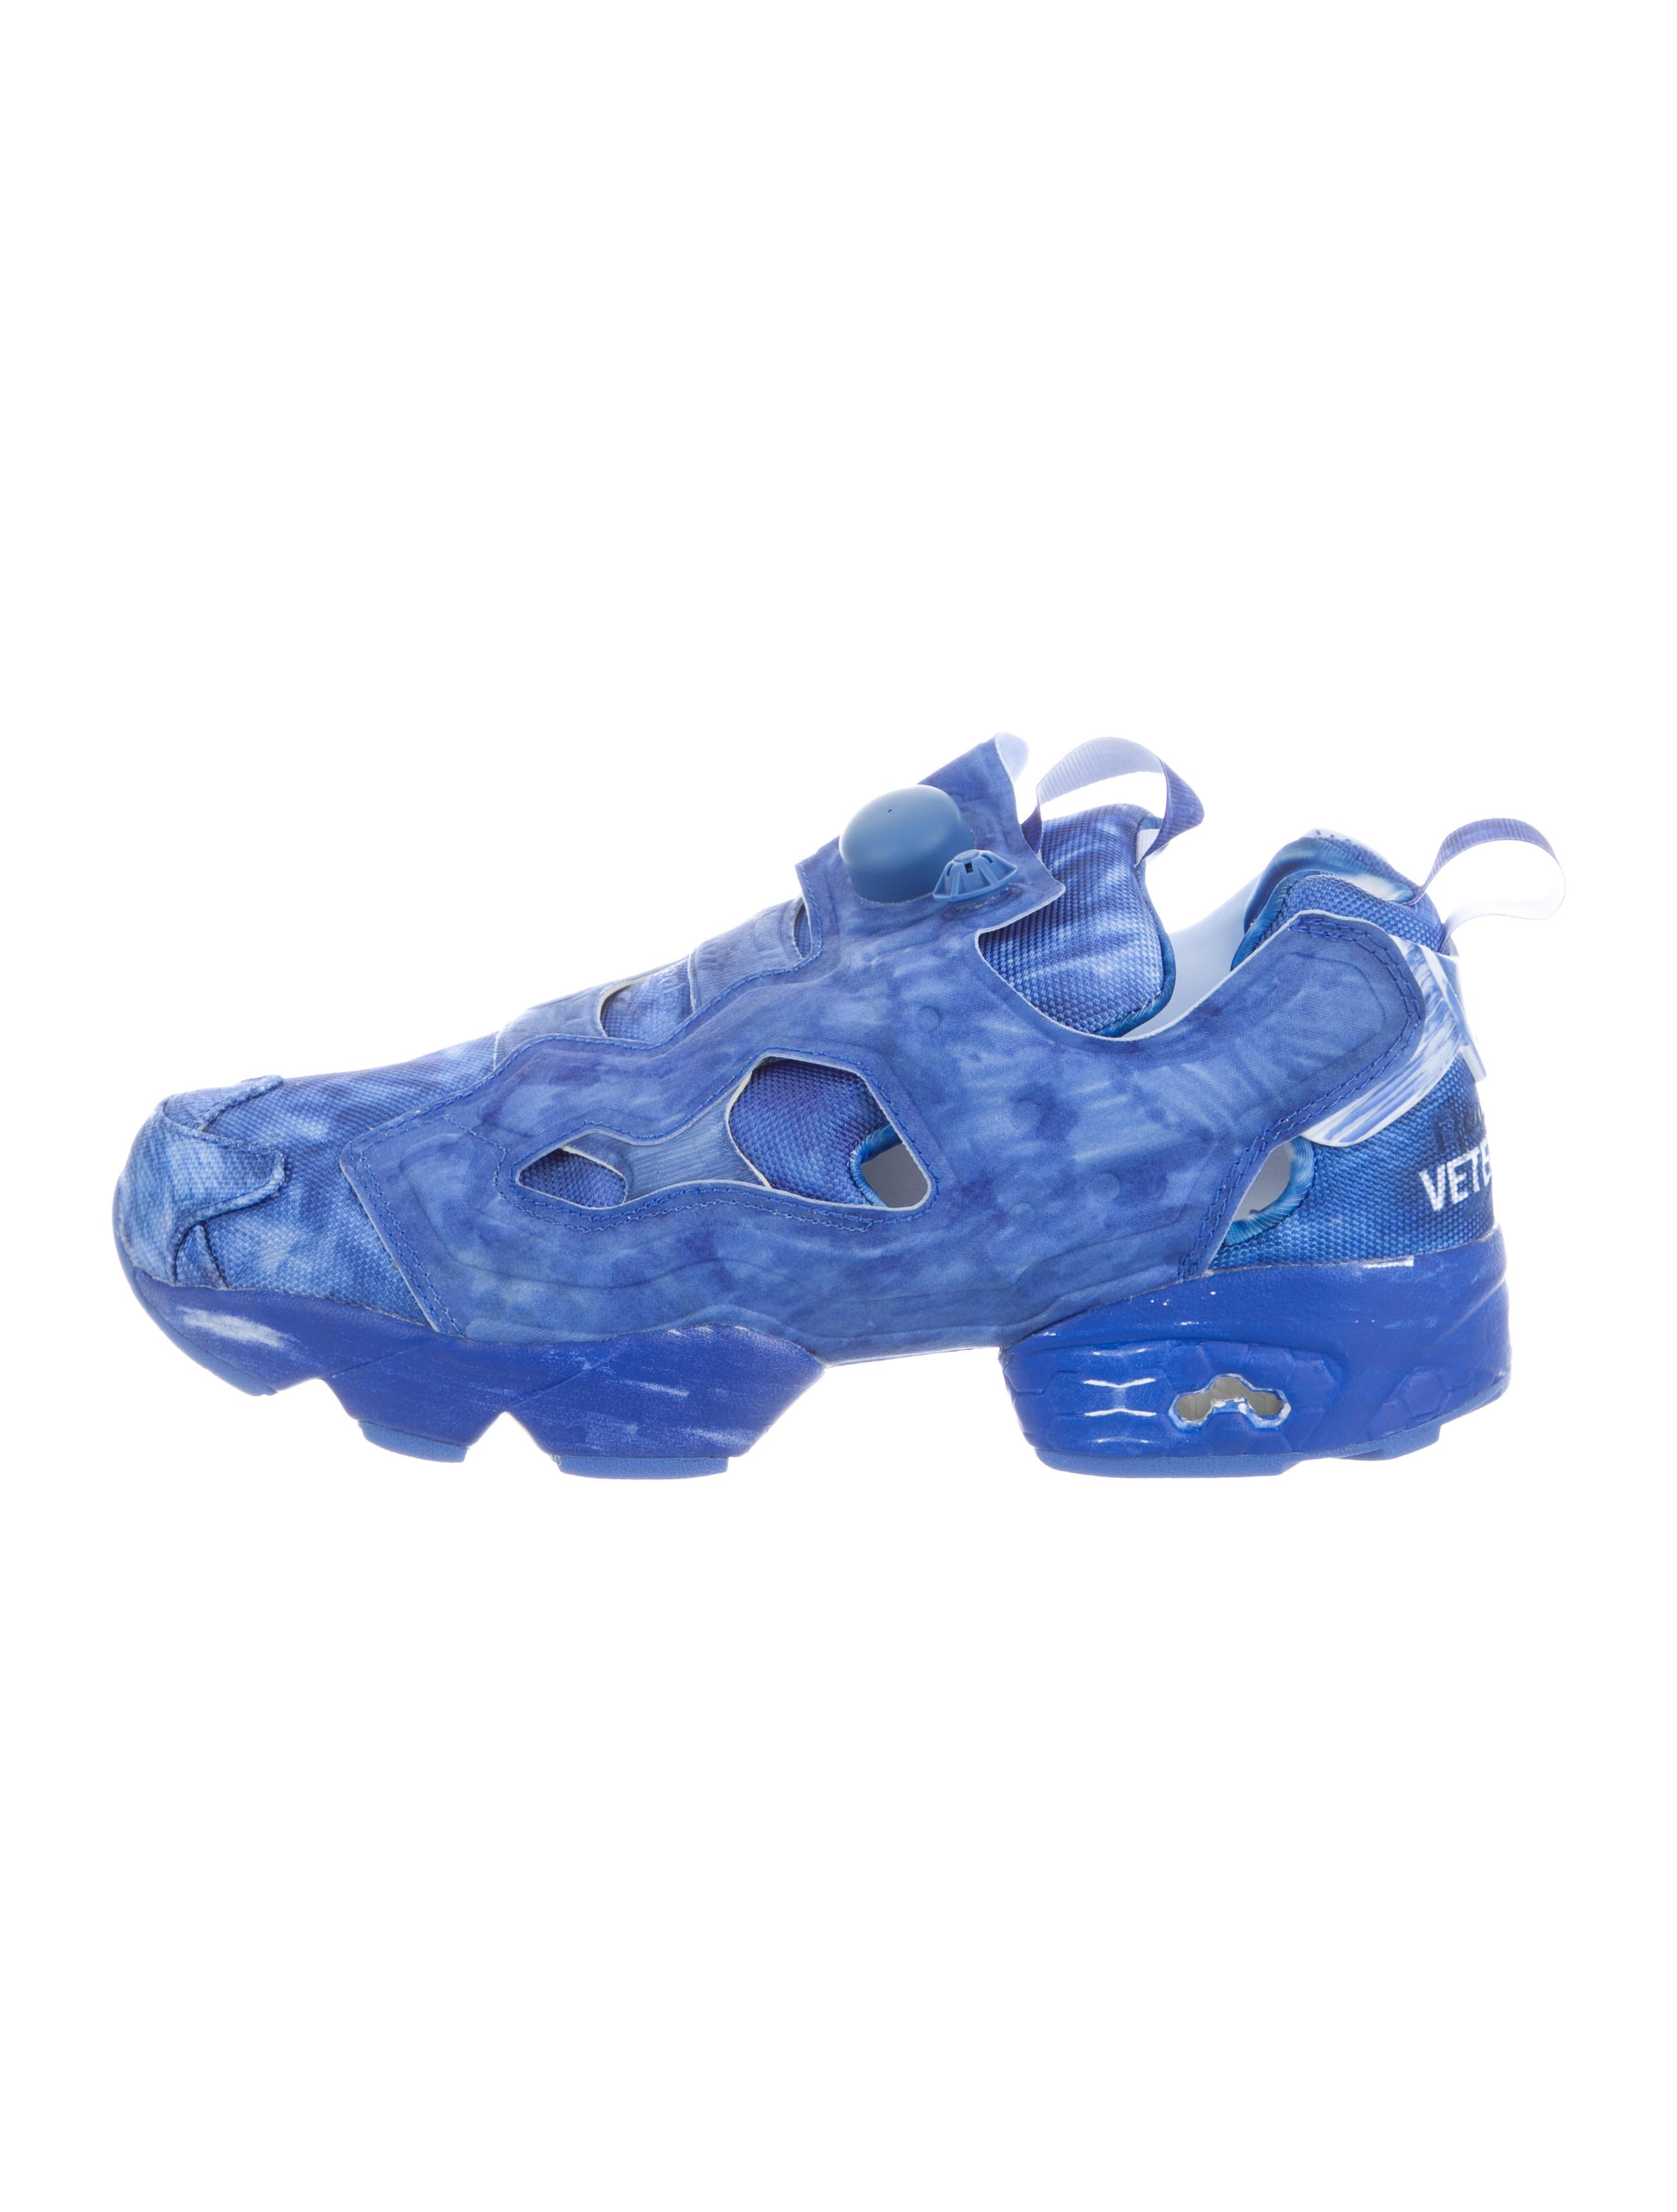 Vetements x Reebok 2017 Highlighted Instapump Sneakers w/ Tags wide range of for sale very cheap for sale discount latest collections big discount cheap price for cheap for sale UciKB